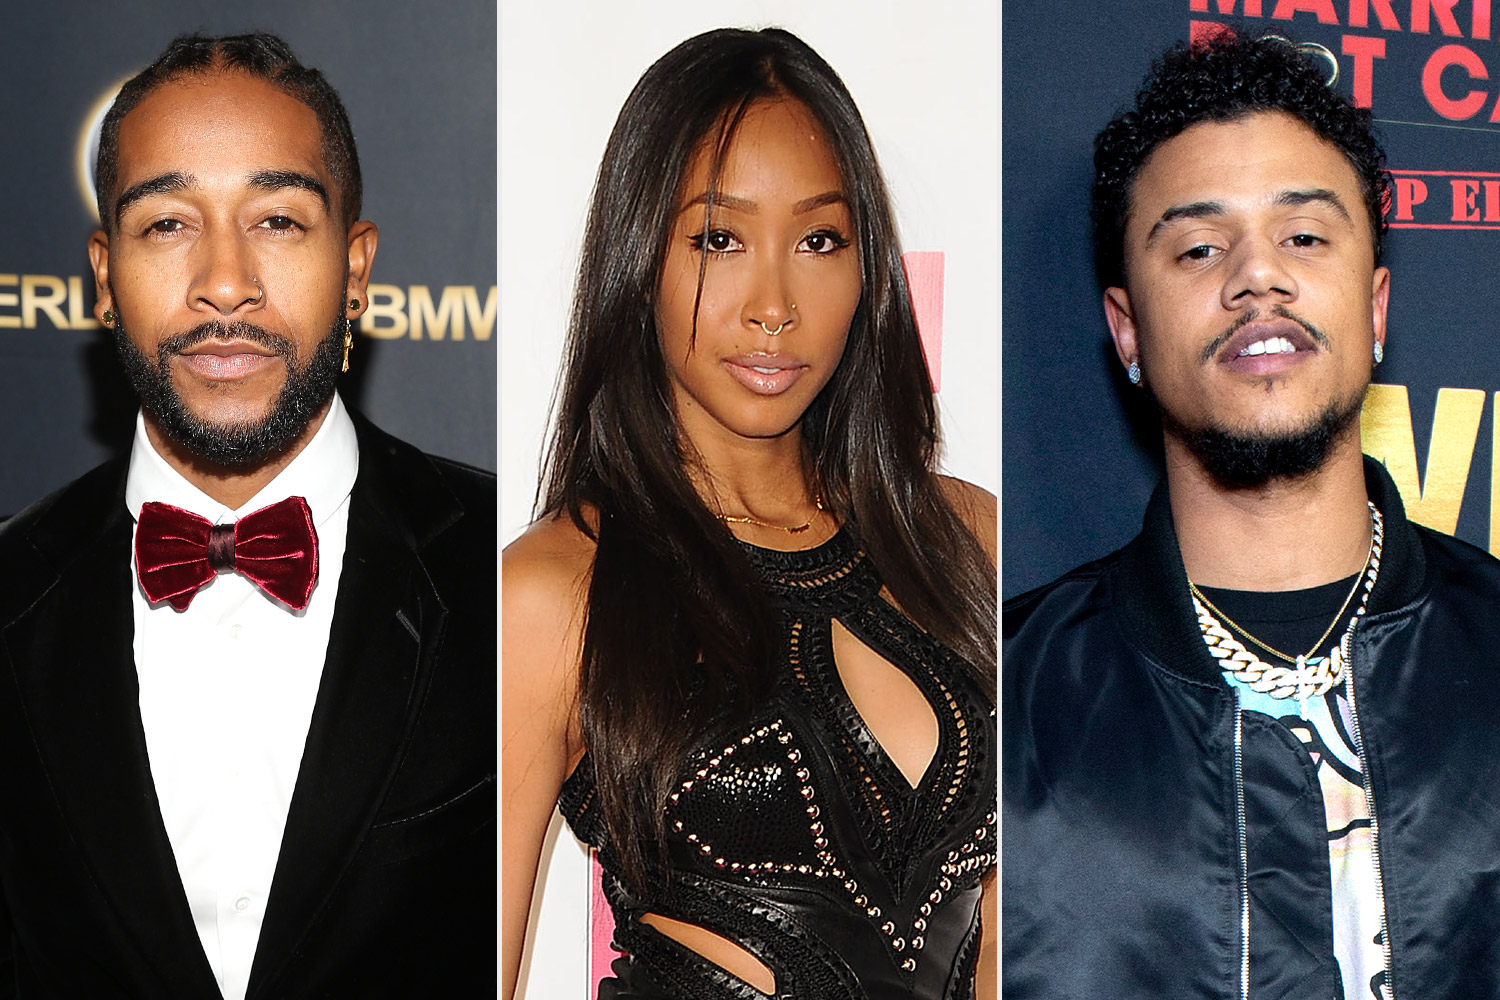 Omarion, Apryl-Jones and Lil-Fizz